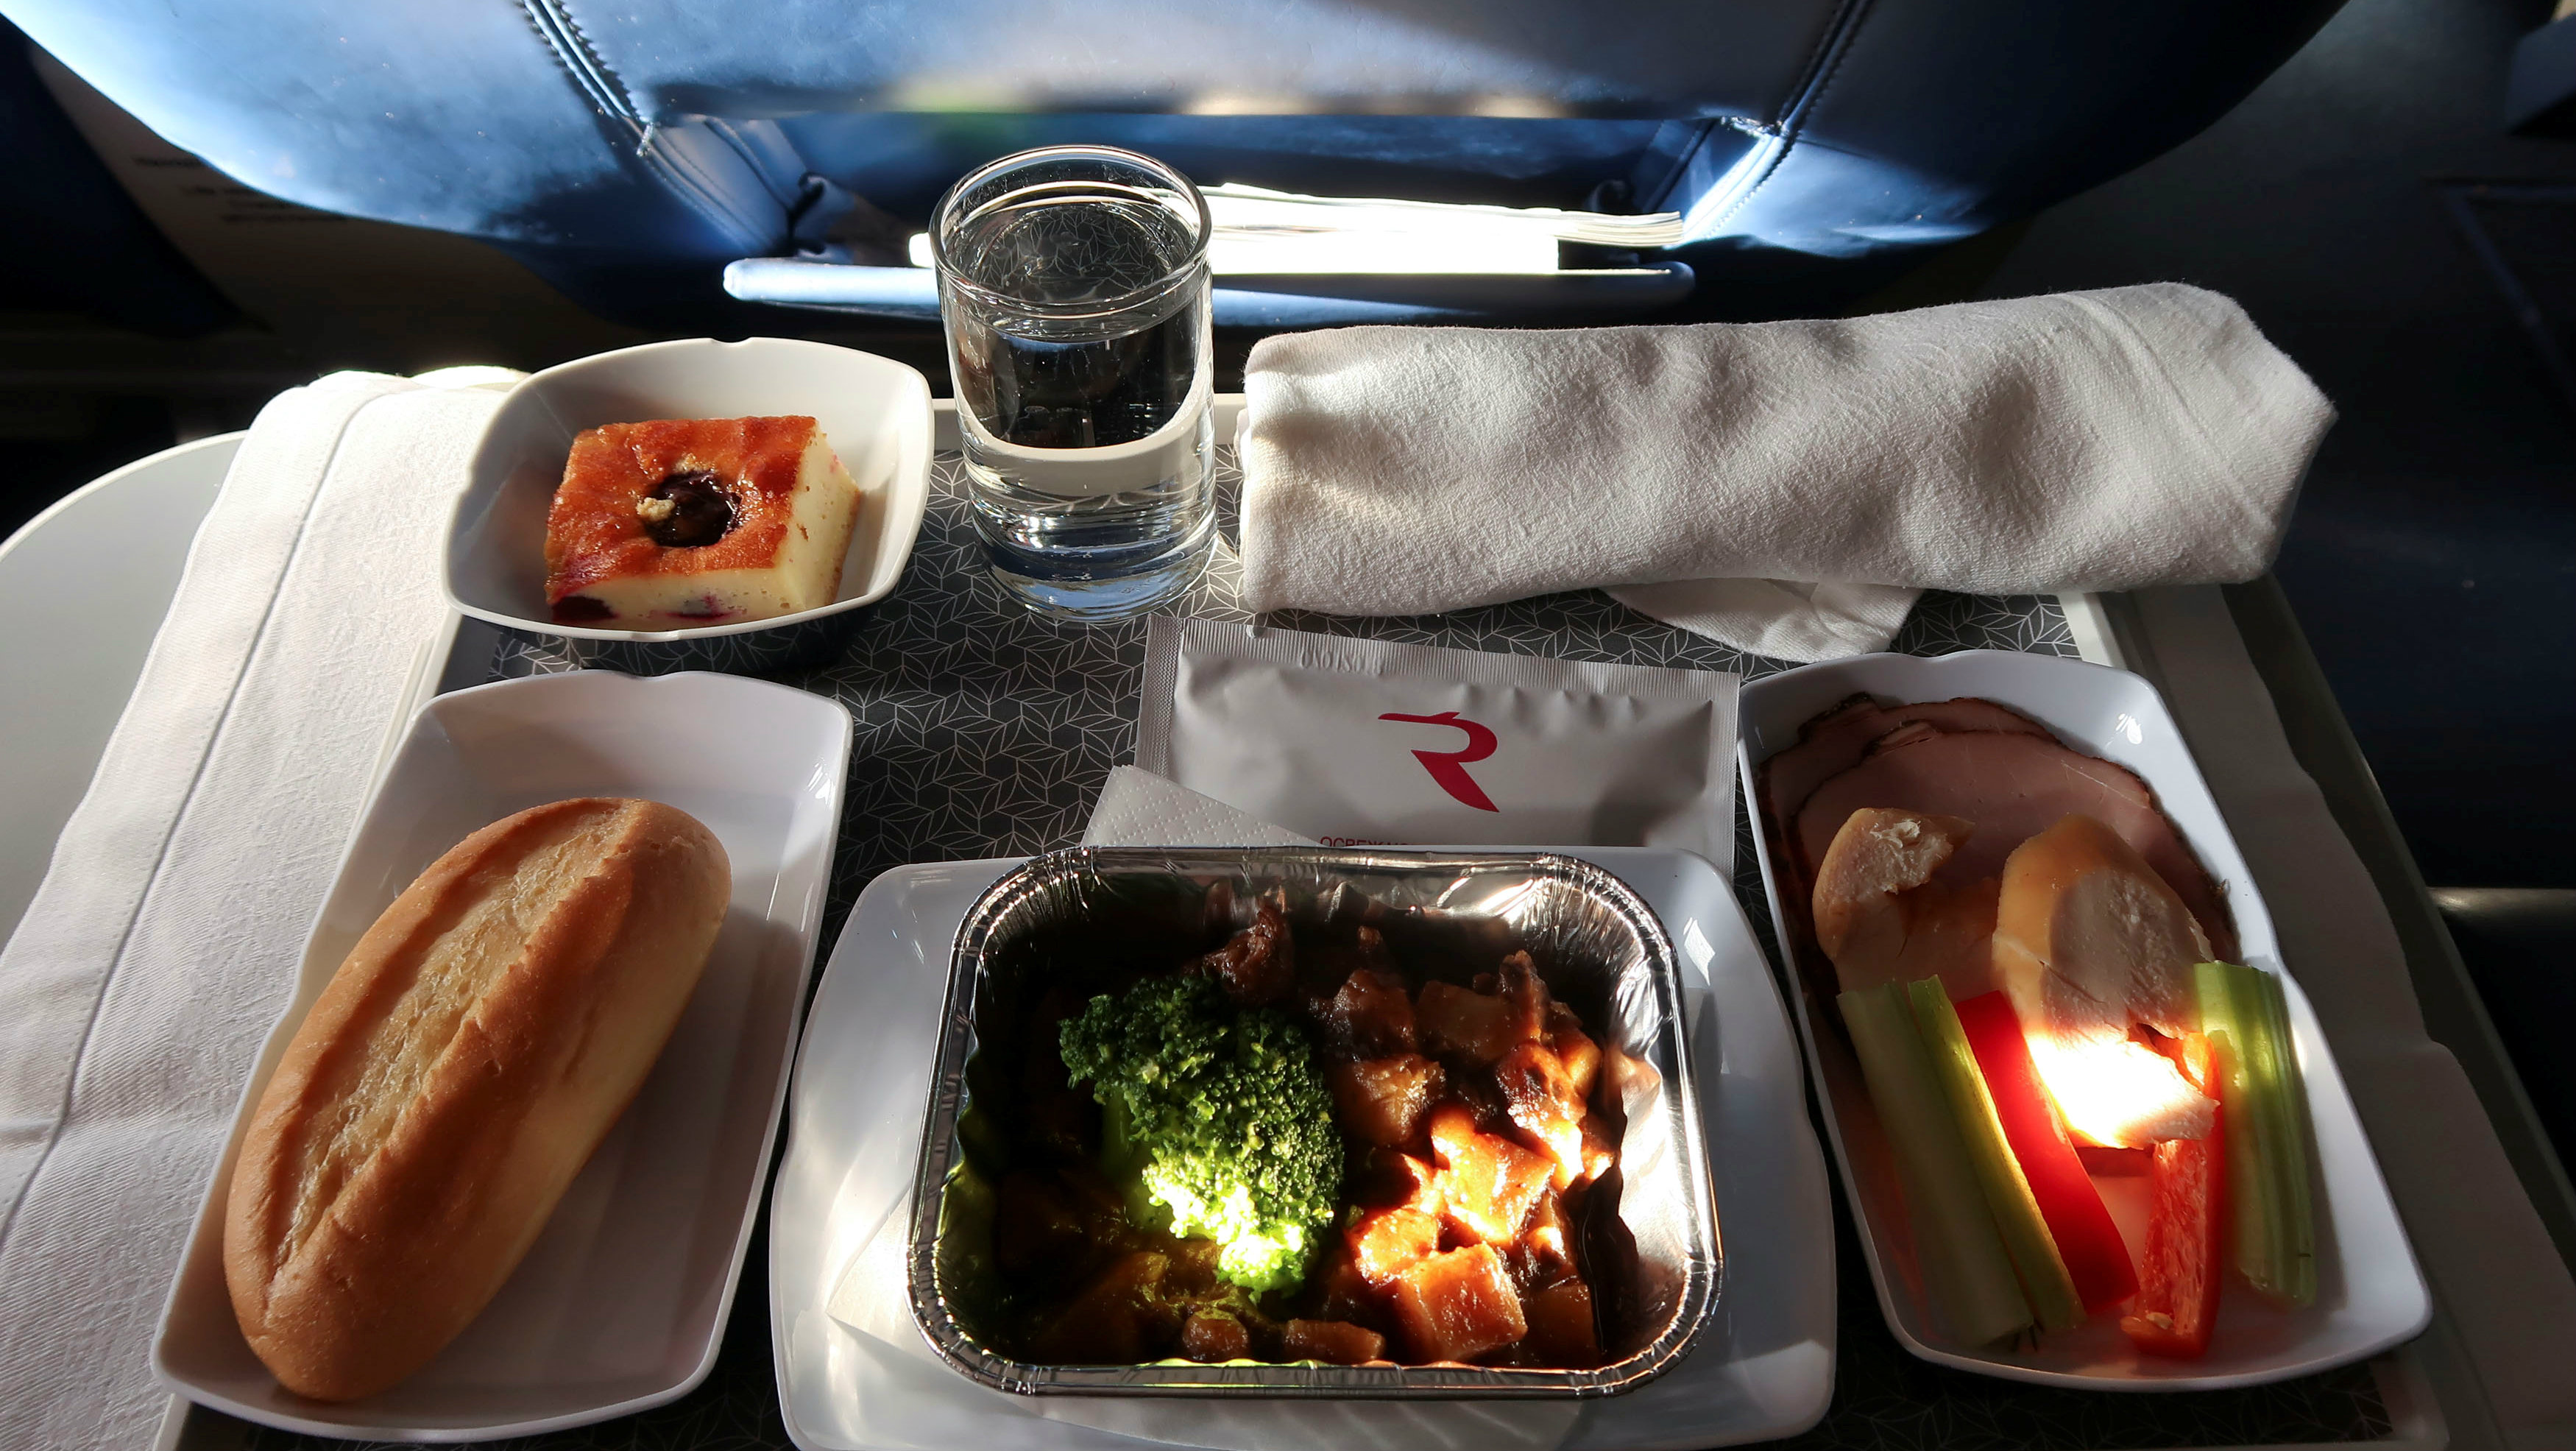 Instagram users are shaming airlines over inflight meals — Quartzy